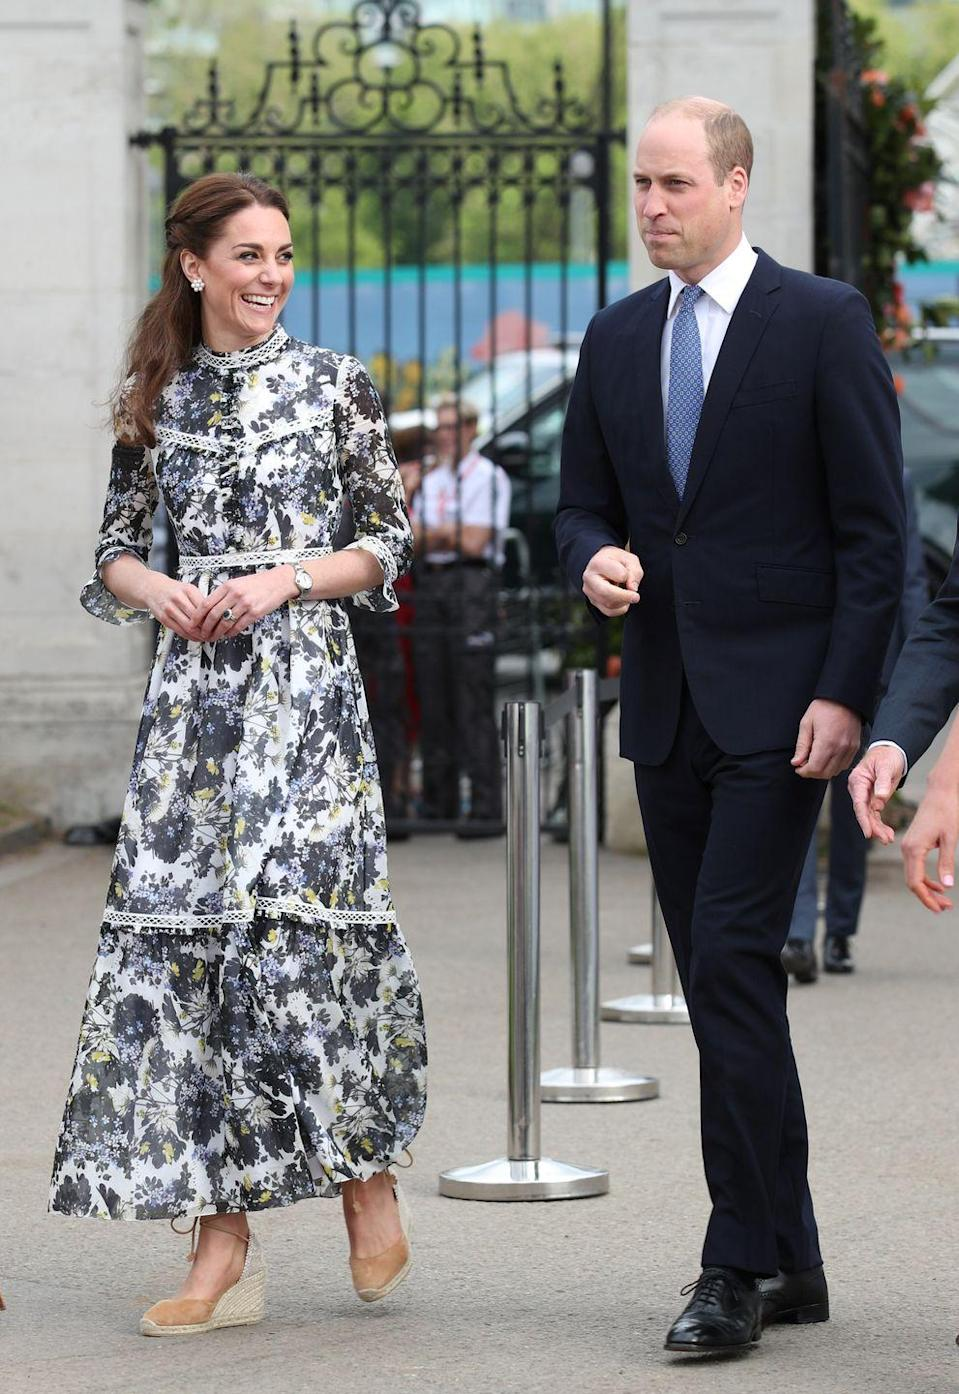 "<p>To show the Queen a garden she'd designed at the Chelsea Flower Show,<a href=""https://www.townandcountrymag.com/style/fashion-trends/a27530823/kate-middleton-erdem-dress-chelsea-flower-show-2019/"" rel=""nofollow noopener"" target=""_blank"" data-ylk=""slk:the Duchess went for a high-necked, floral Erdem dress"" class=""link rapid-noclick-resp""> the Duchess went for a high-necked, floral Erdem dress</a>, along with a pair of summery espadrilles.</p>"